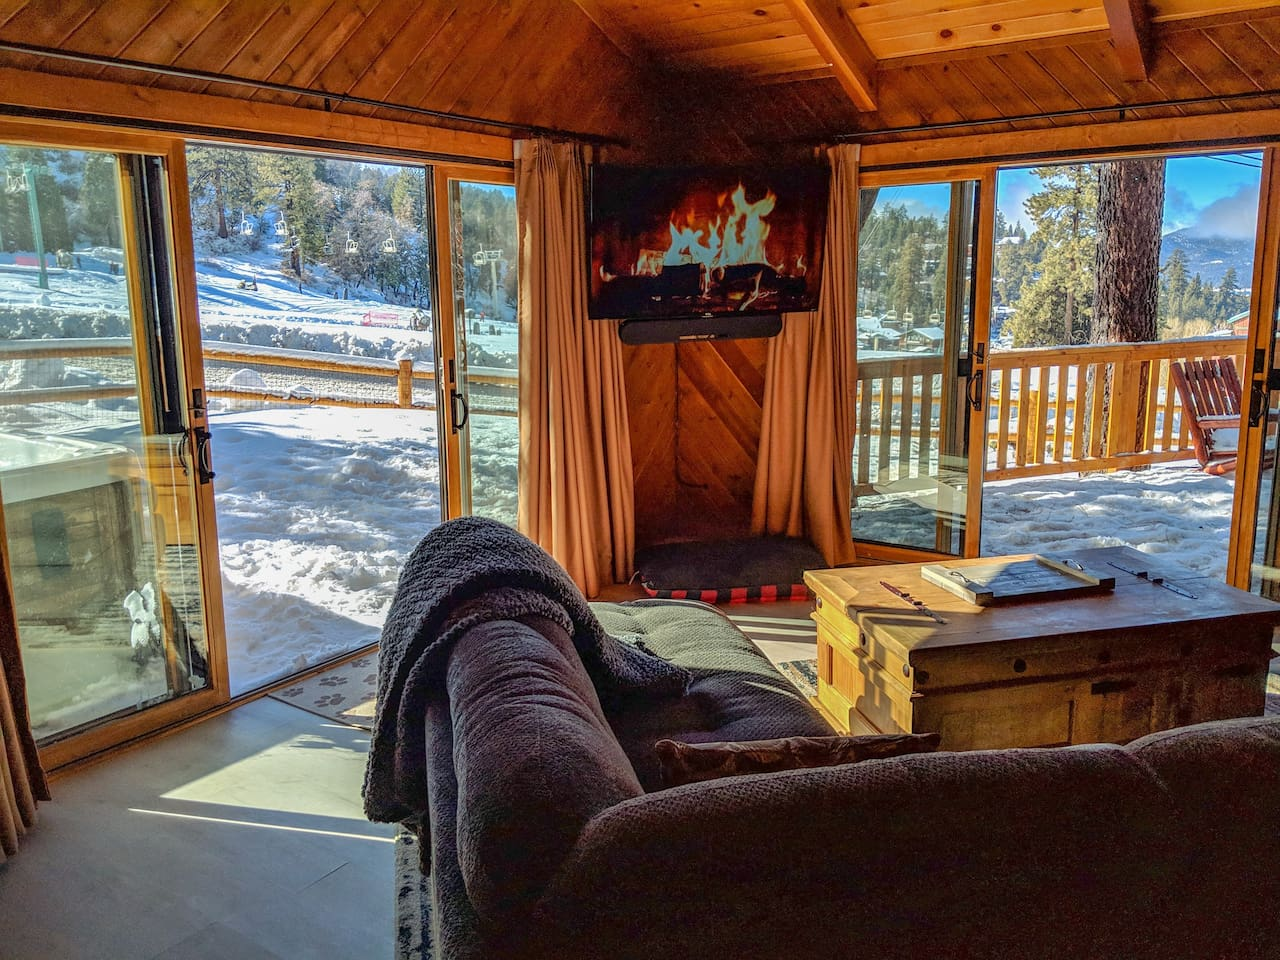 Best spot on the mountain in the Game Room. Lounge on the couch and watch the skiers go by. The hot tub (just outside) is the perfect place to relax after a day on the slopes.